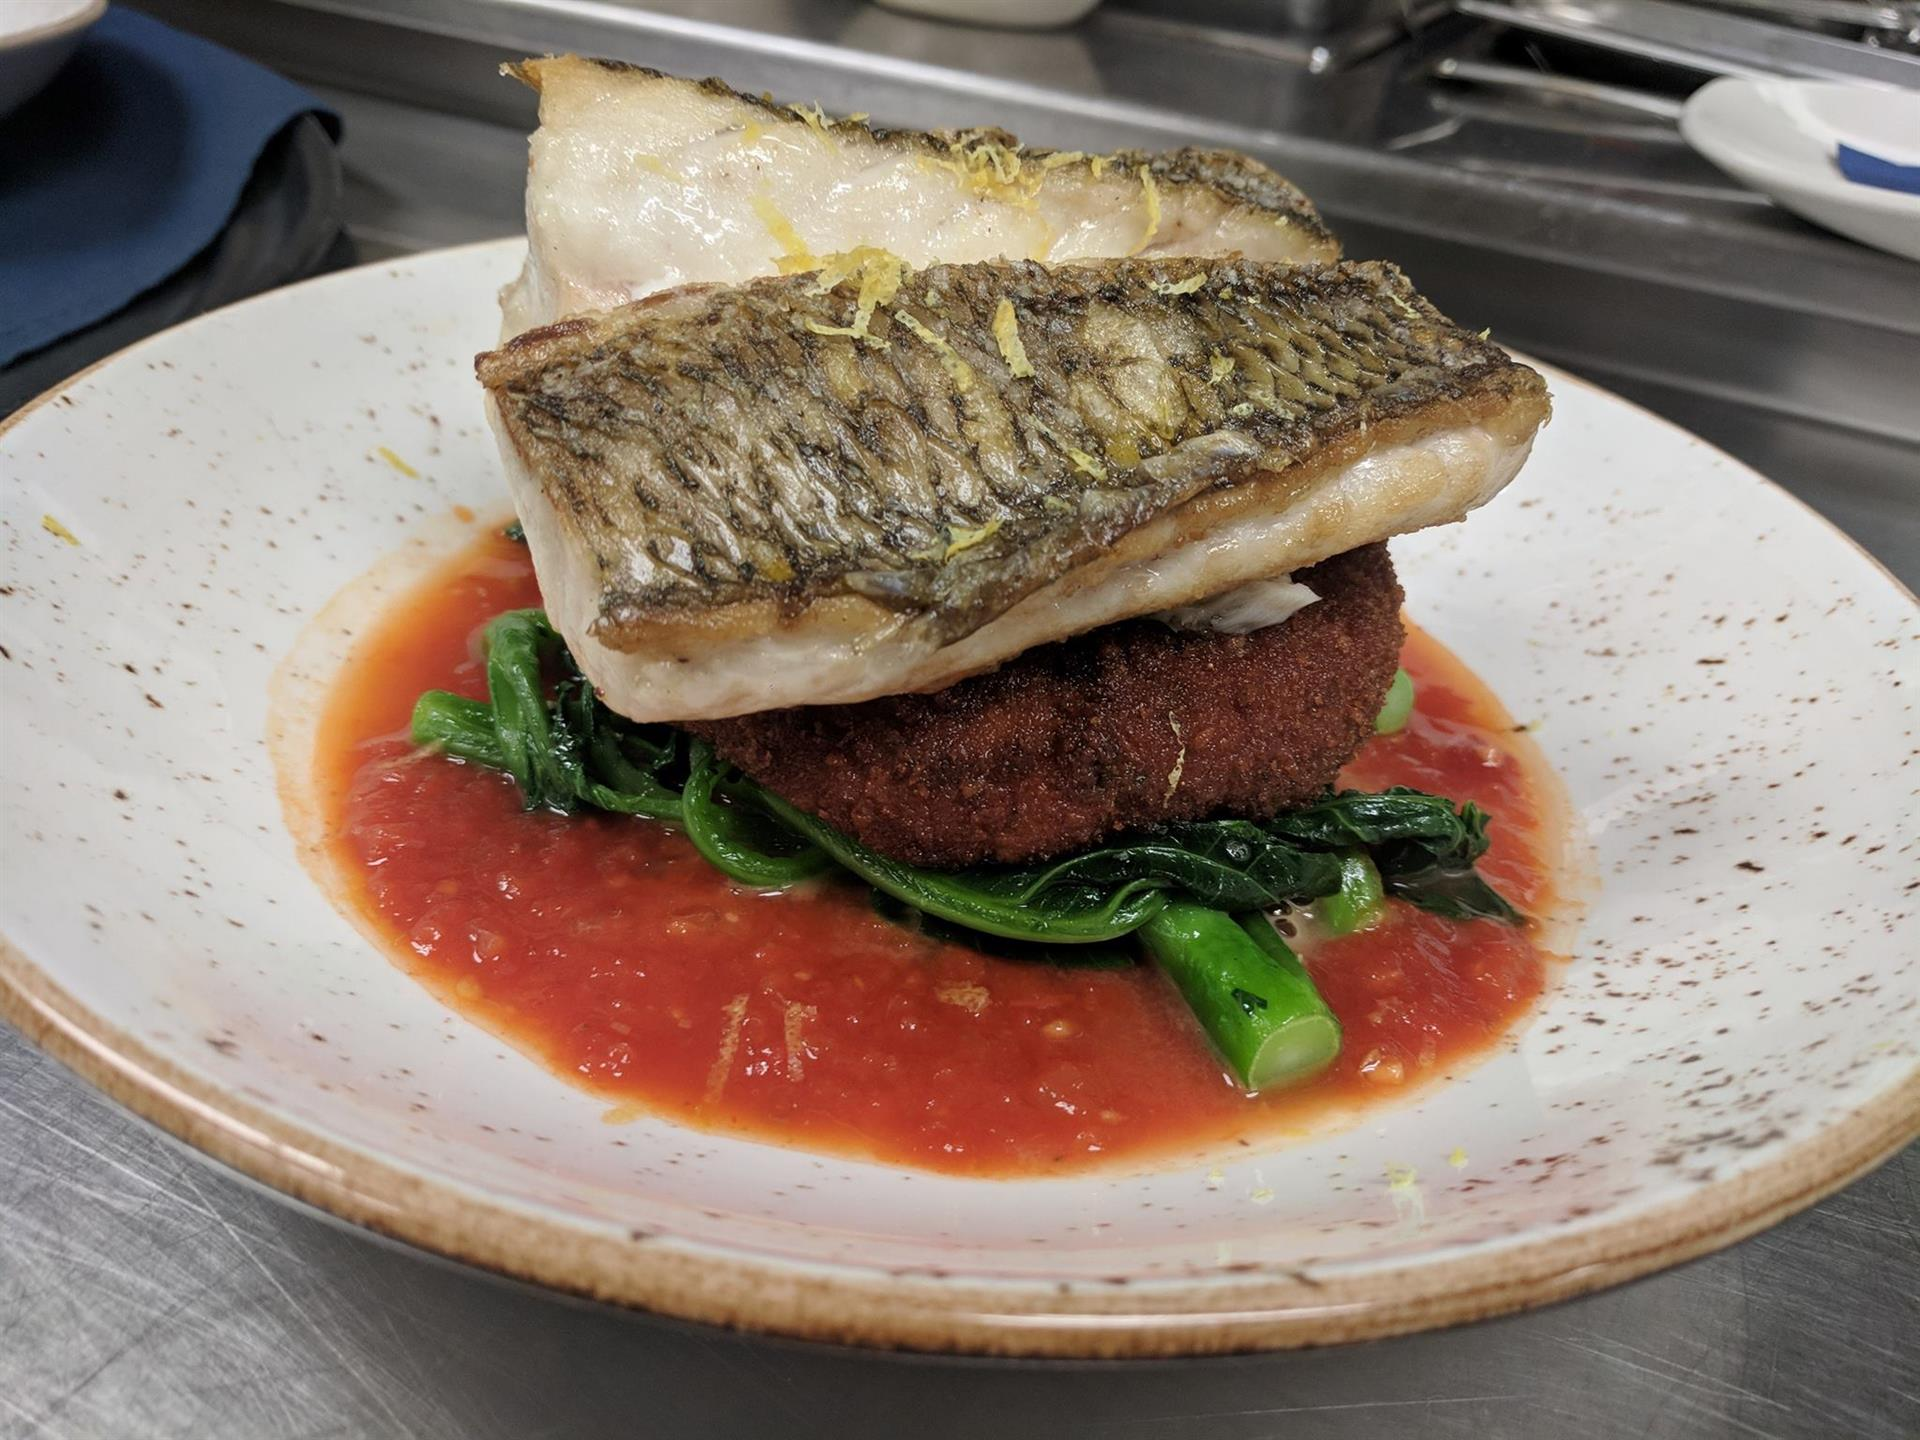 Fish over a red sauce on a white plate